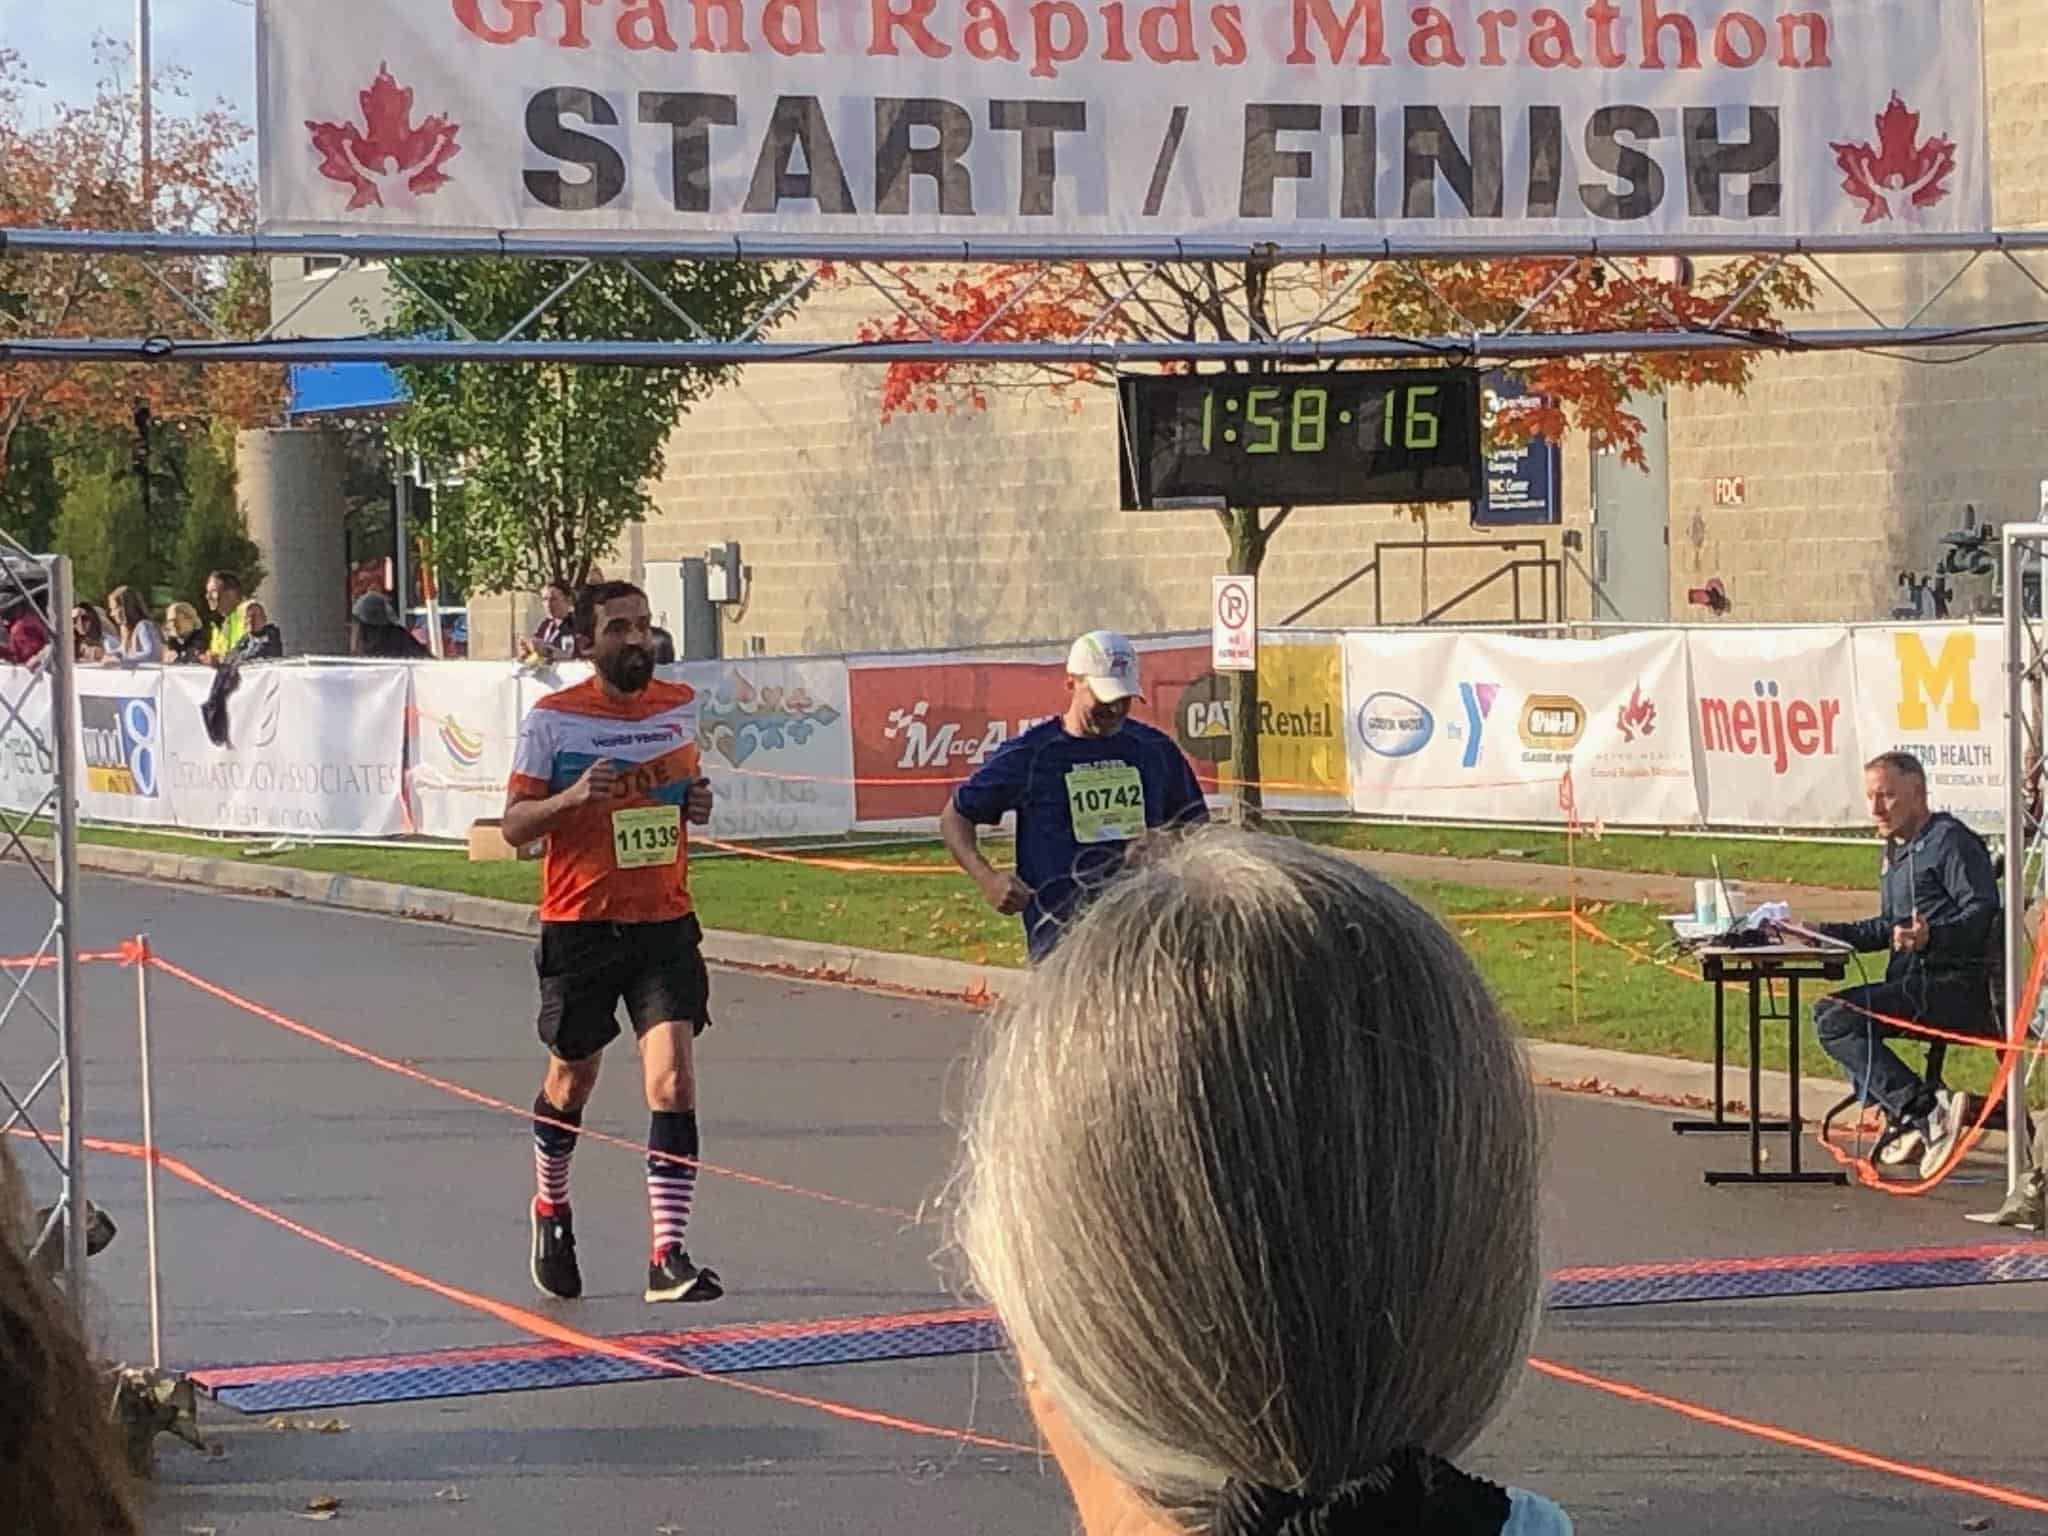 Joseph Lalonde in a Team World Vision jersey crossing the finish line of the Grand Rapids half marathon